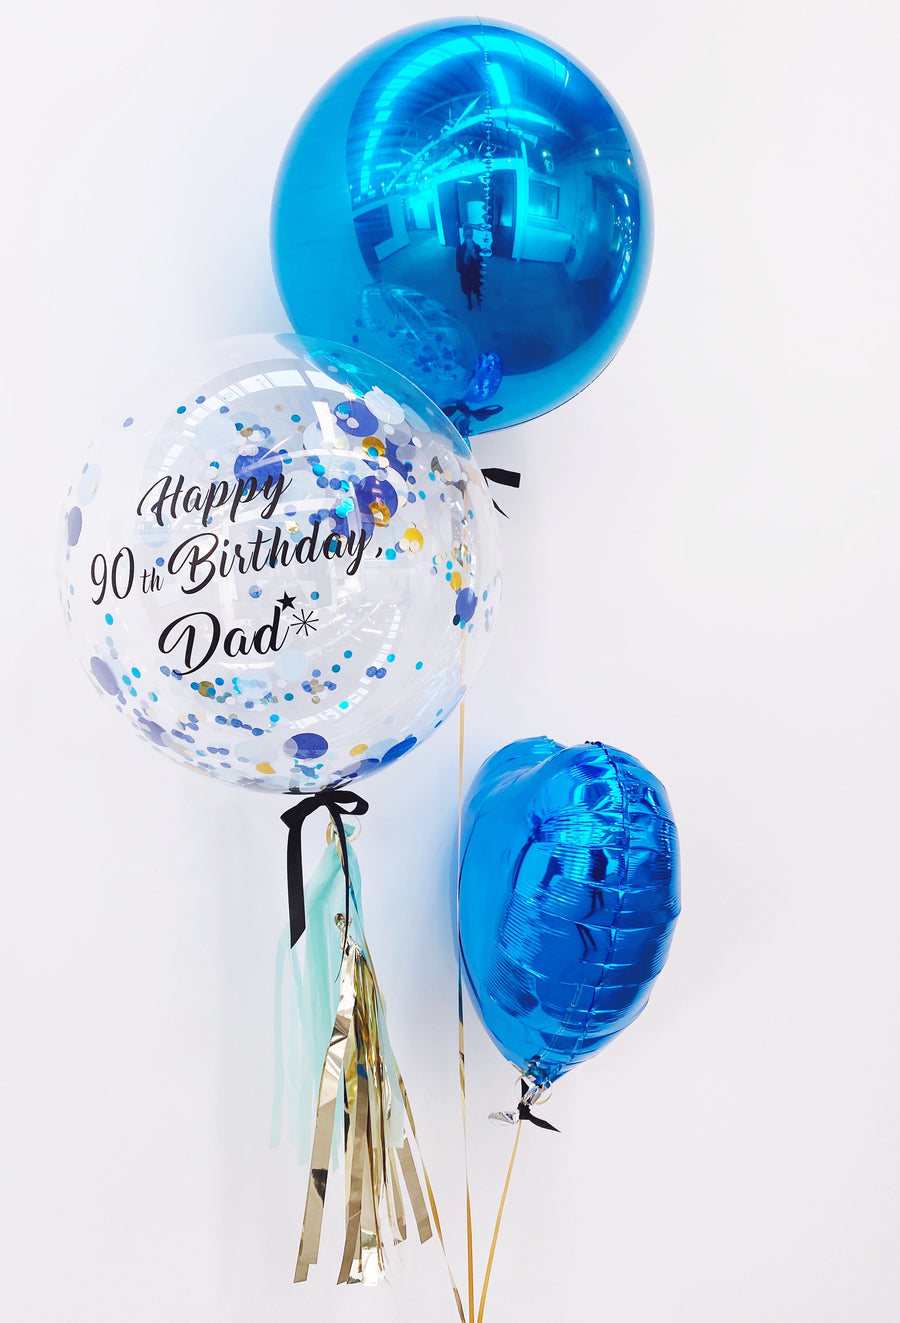 Birthday balloons for Dad. Gift ideas for men